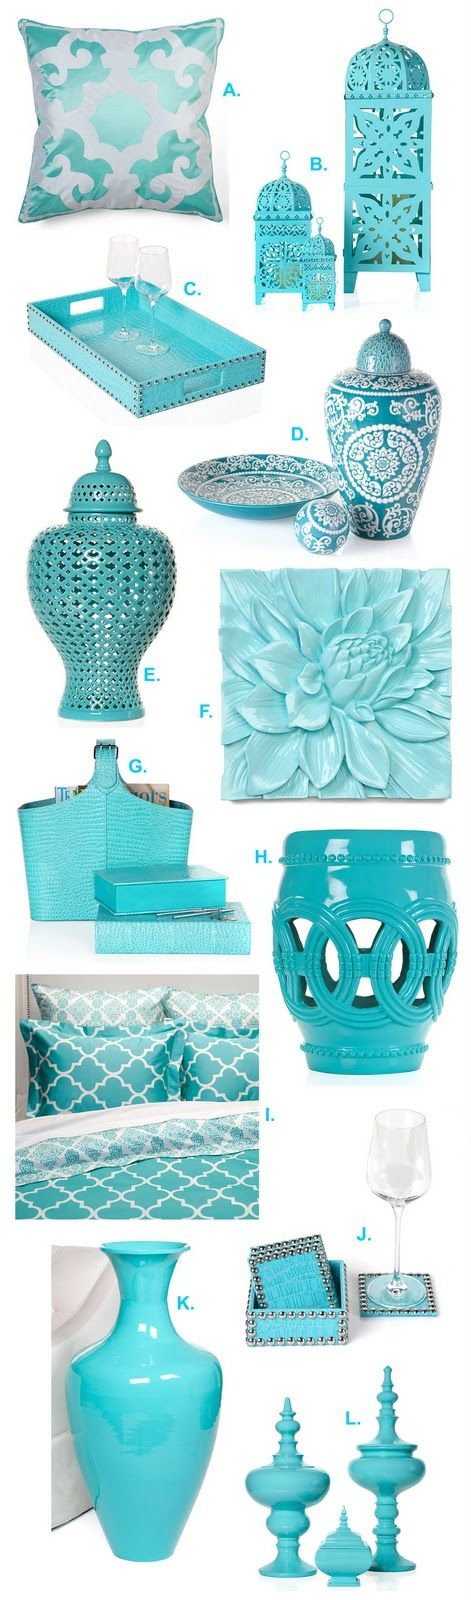 Turquoise home decor accessories interior design for Home decor accessories